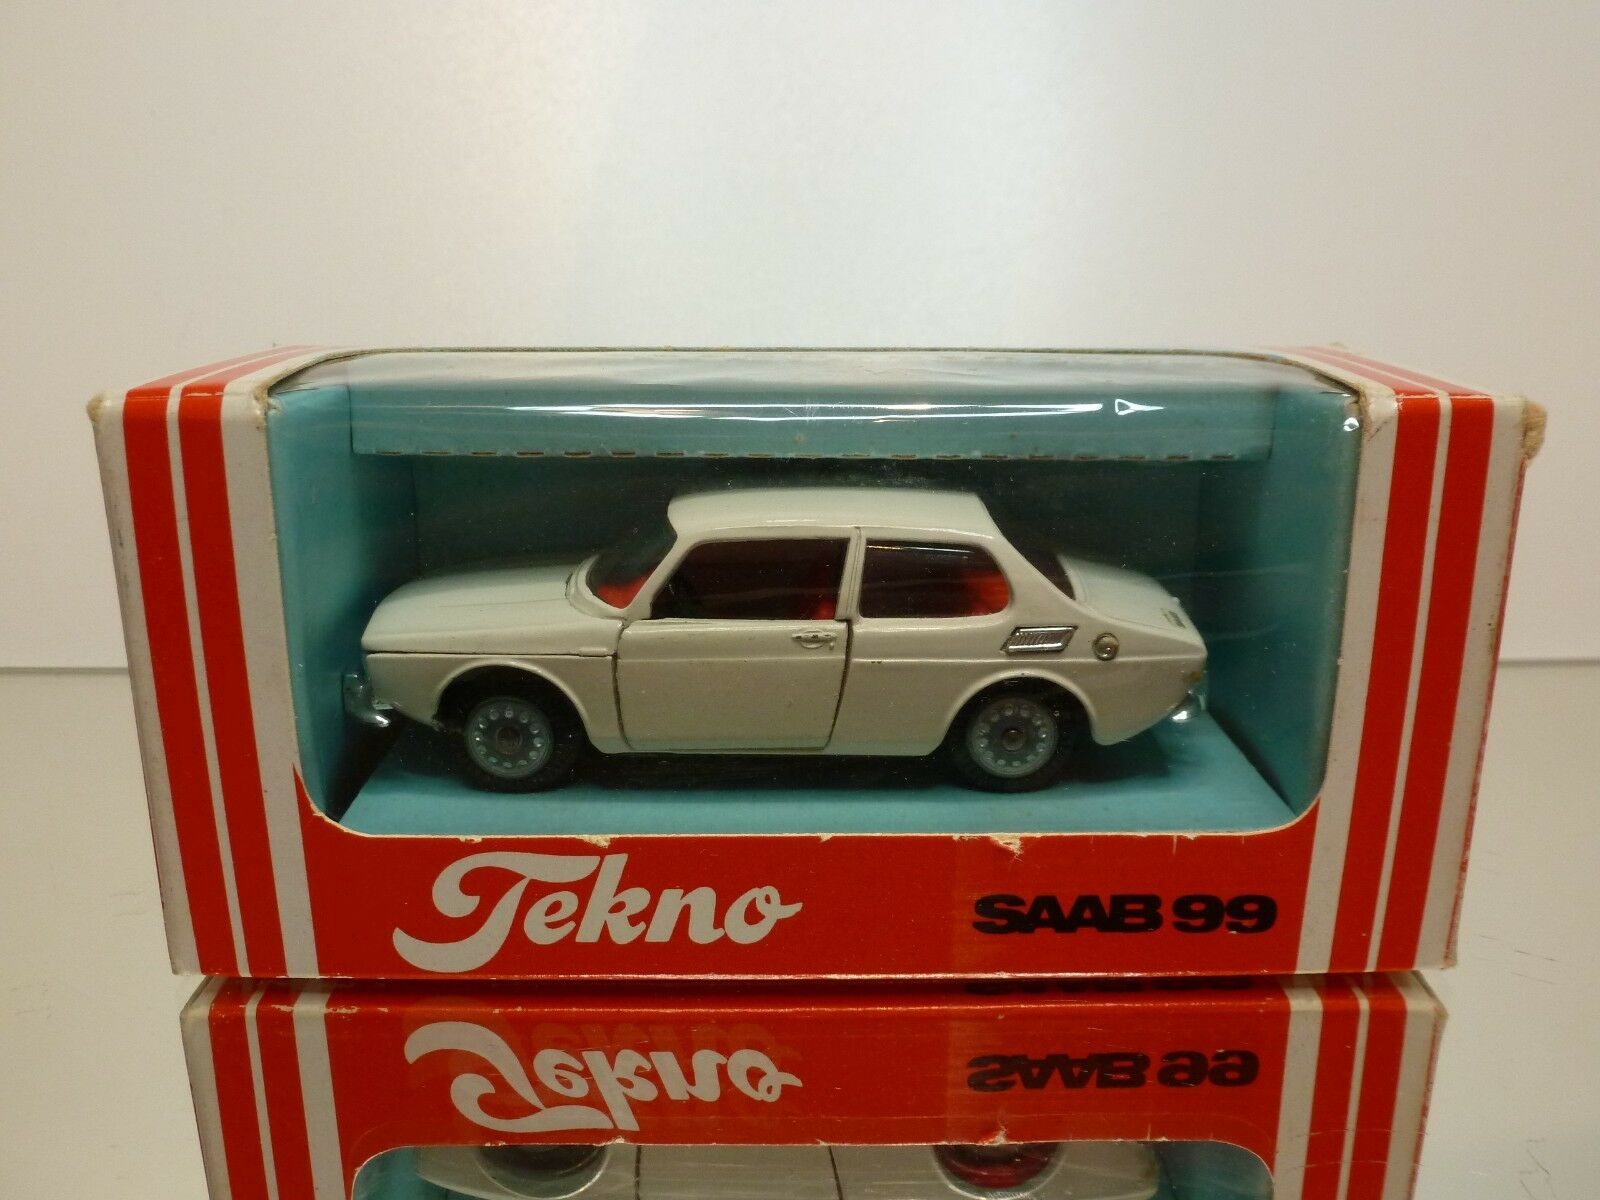 TEKNO DENMARK 837 SAAB 99 - OFF blancoo 1 43 RARE - VERY GOOD CONDITION IN BOX